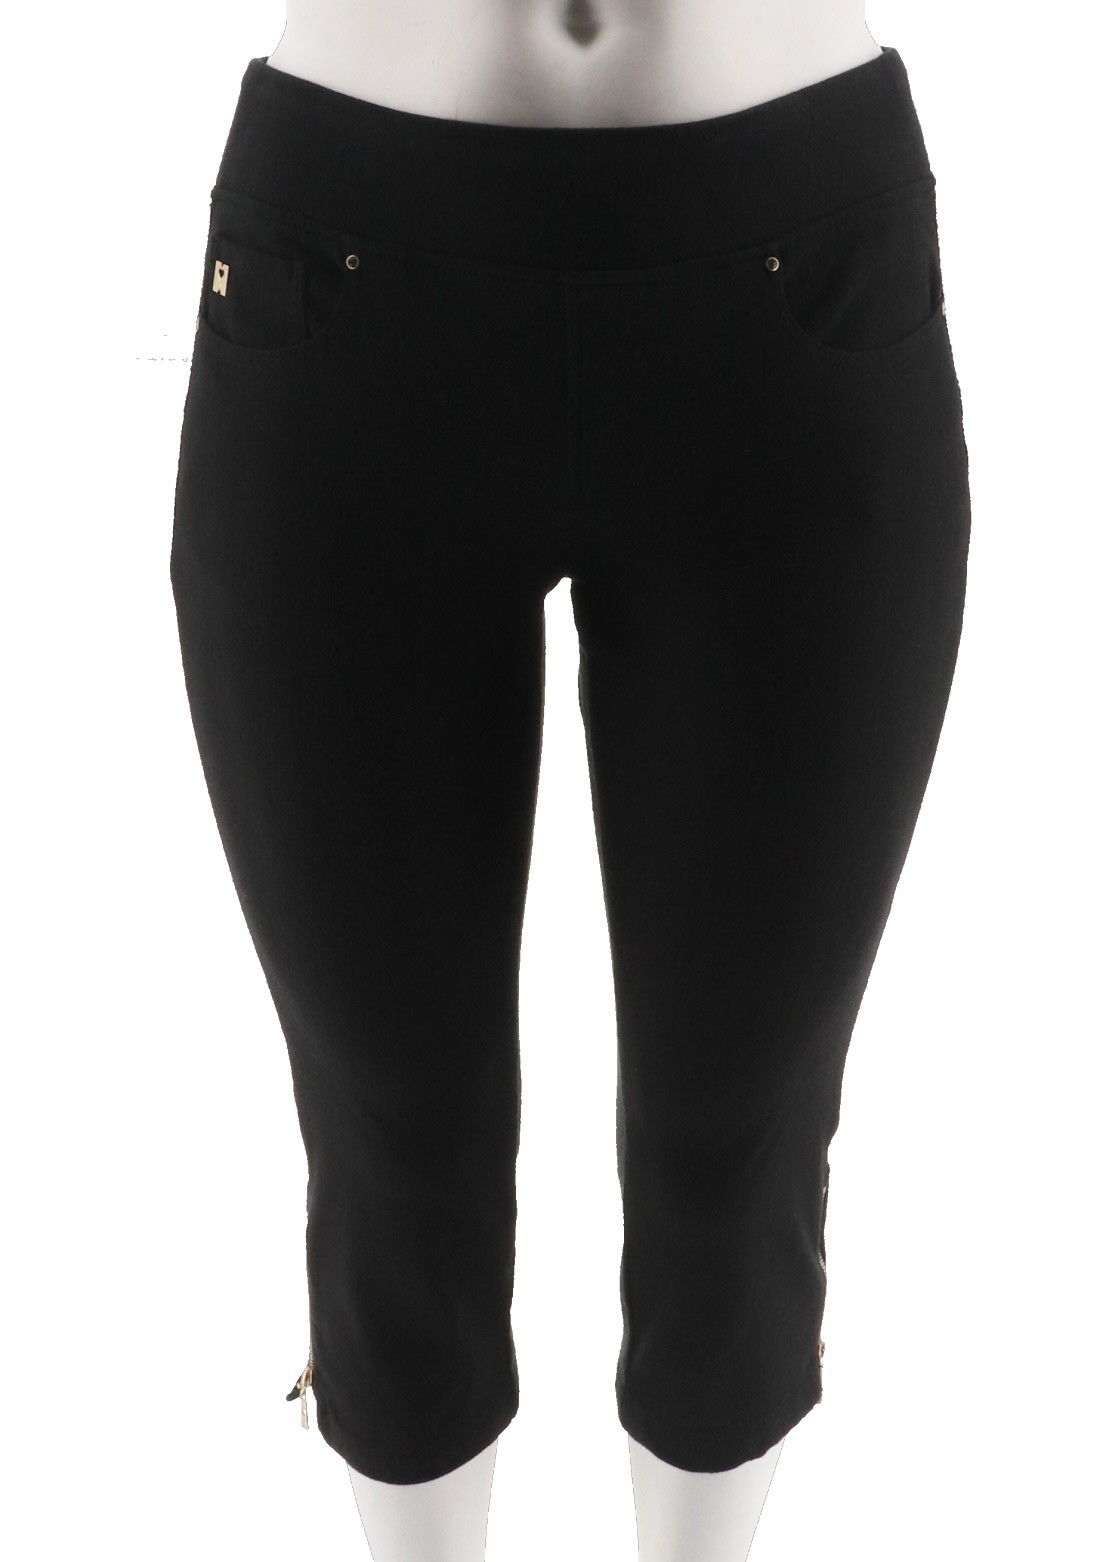 Belle Kim Gravel Flexibelle Pull-On Cropped Jeans Petite Black 18WP NEW A301516